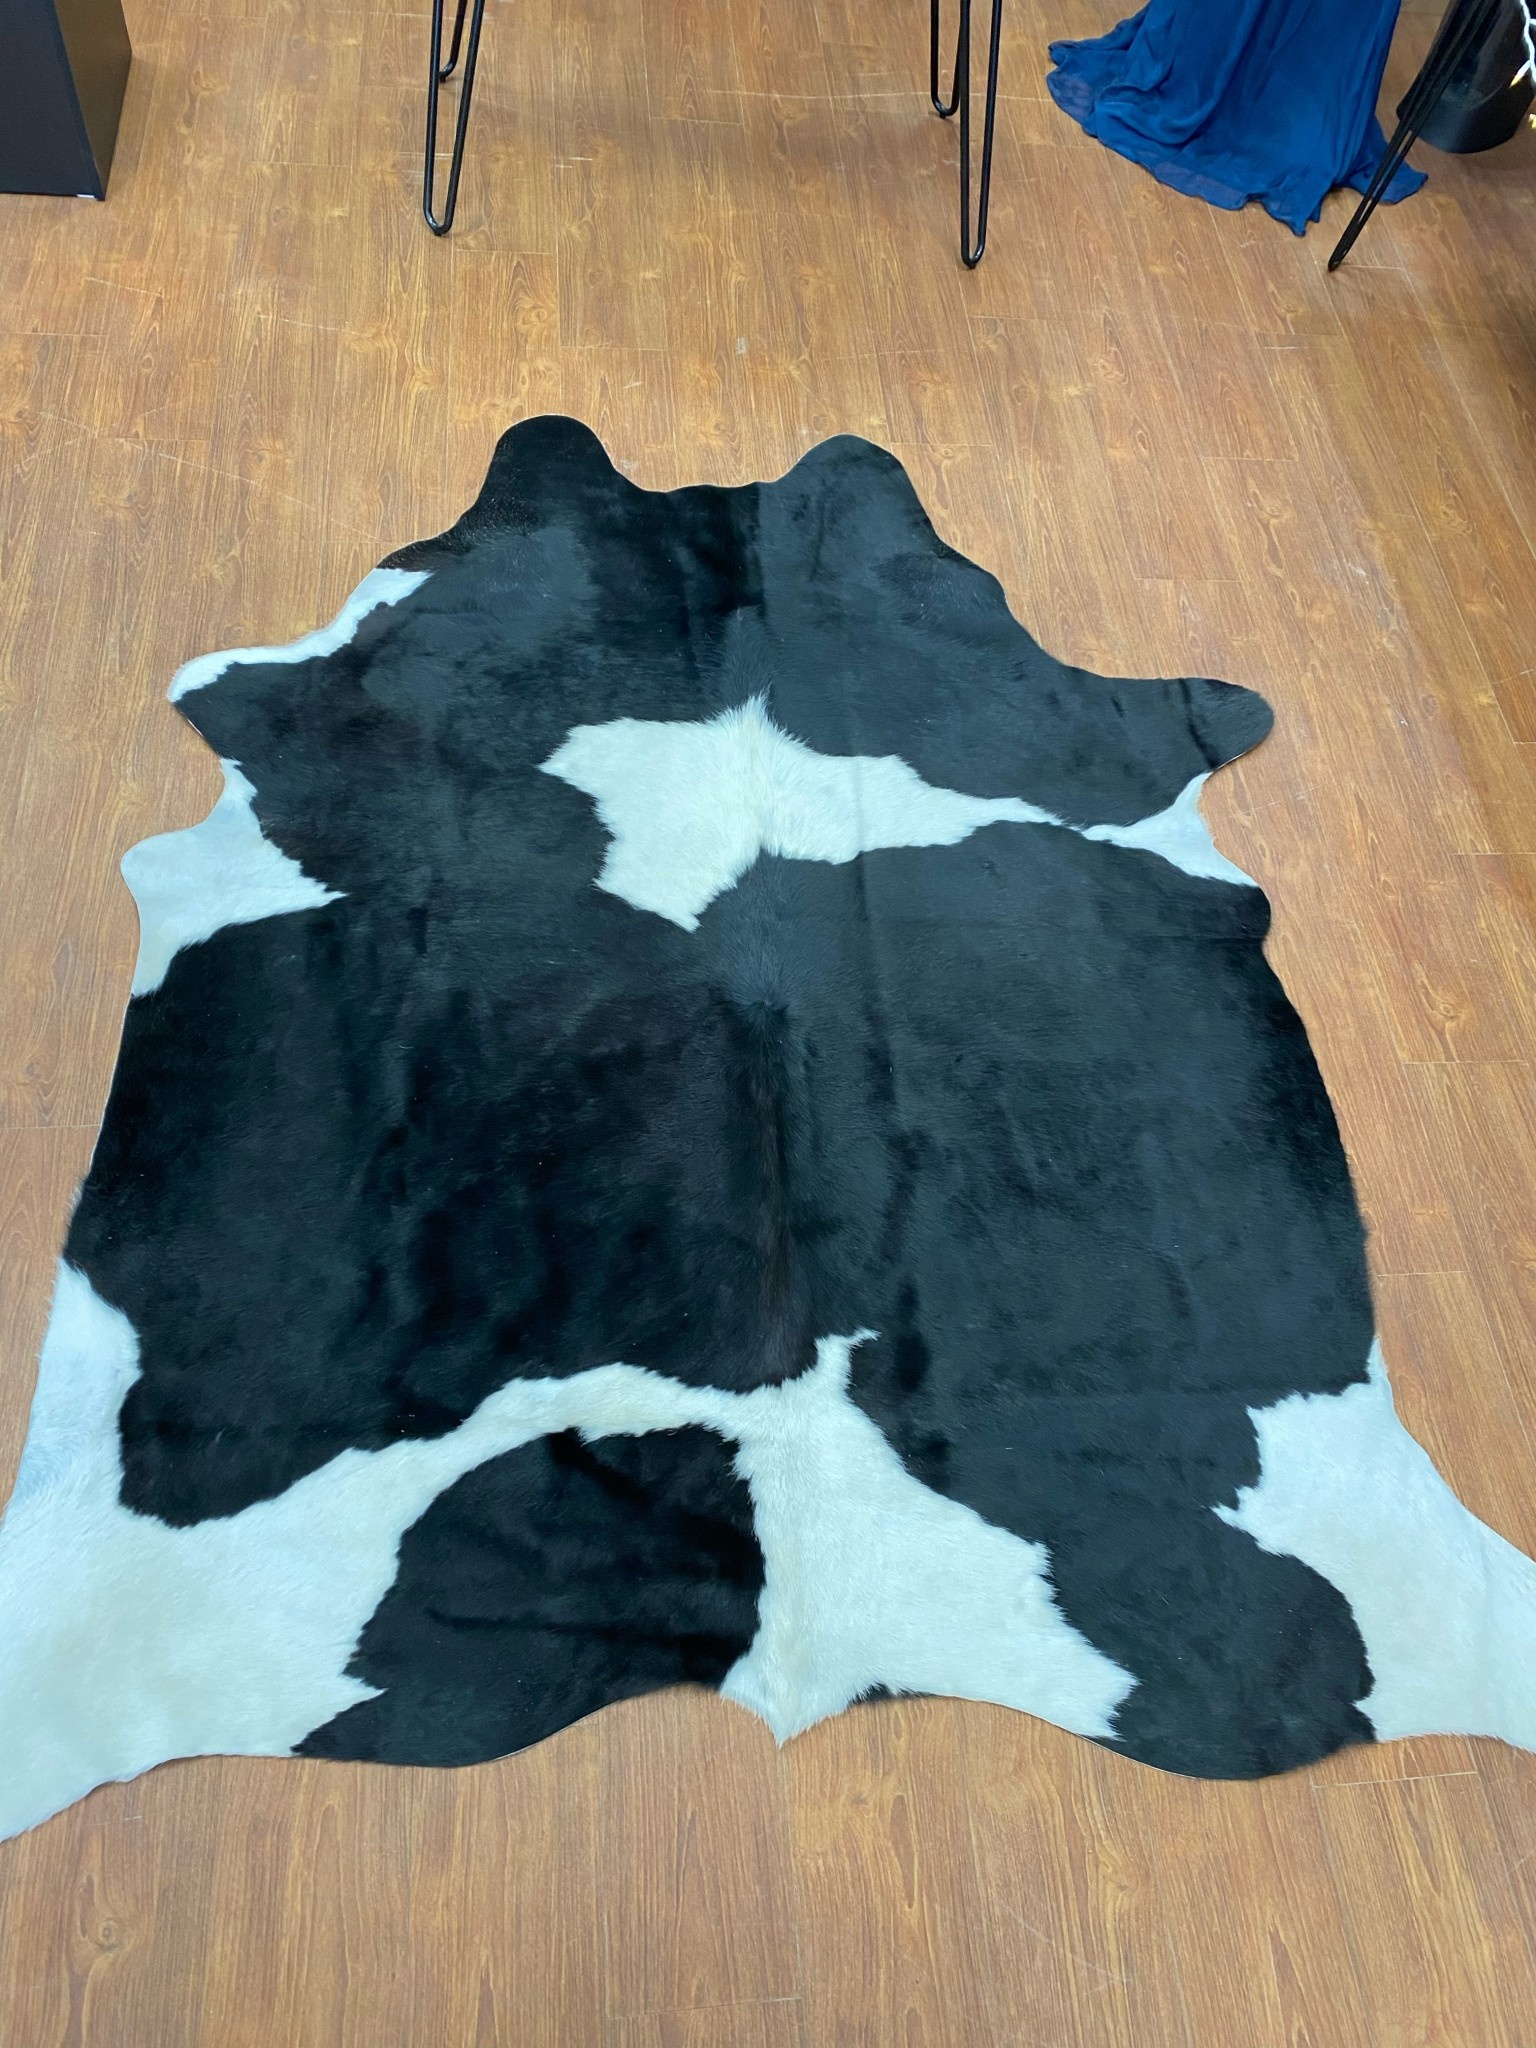 Holstein Black and White Cowhide Rug Throw